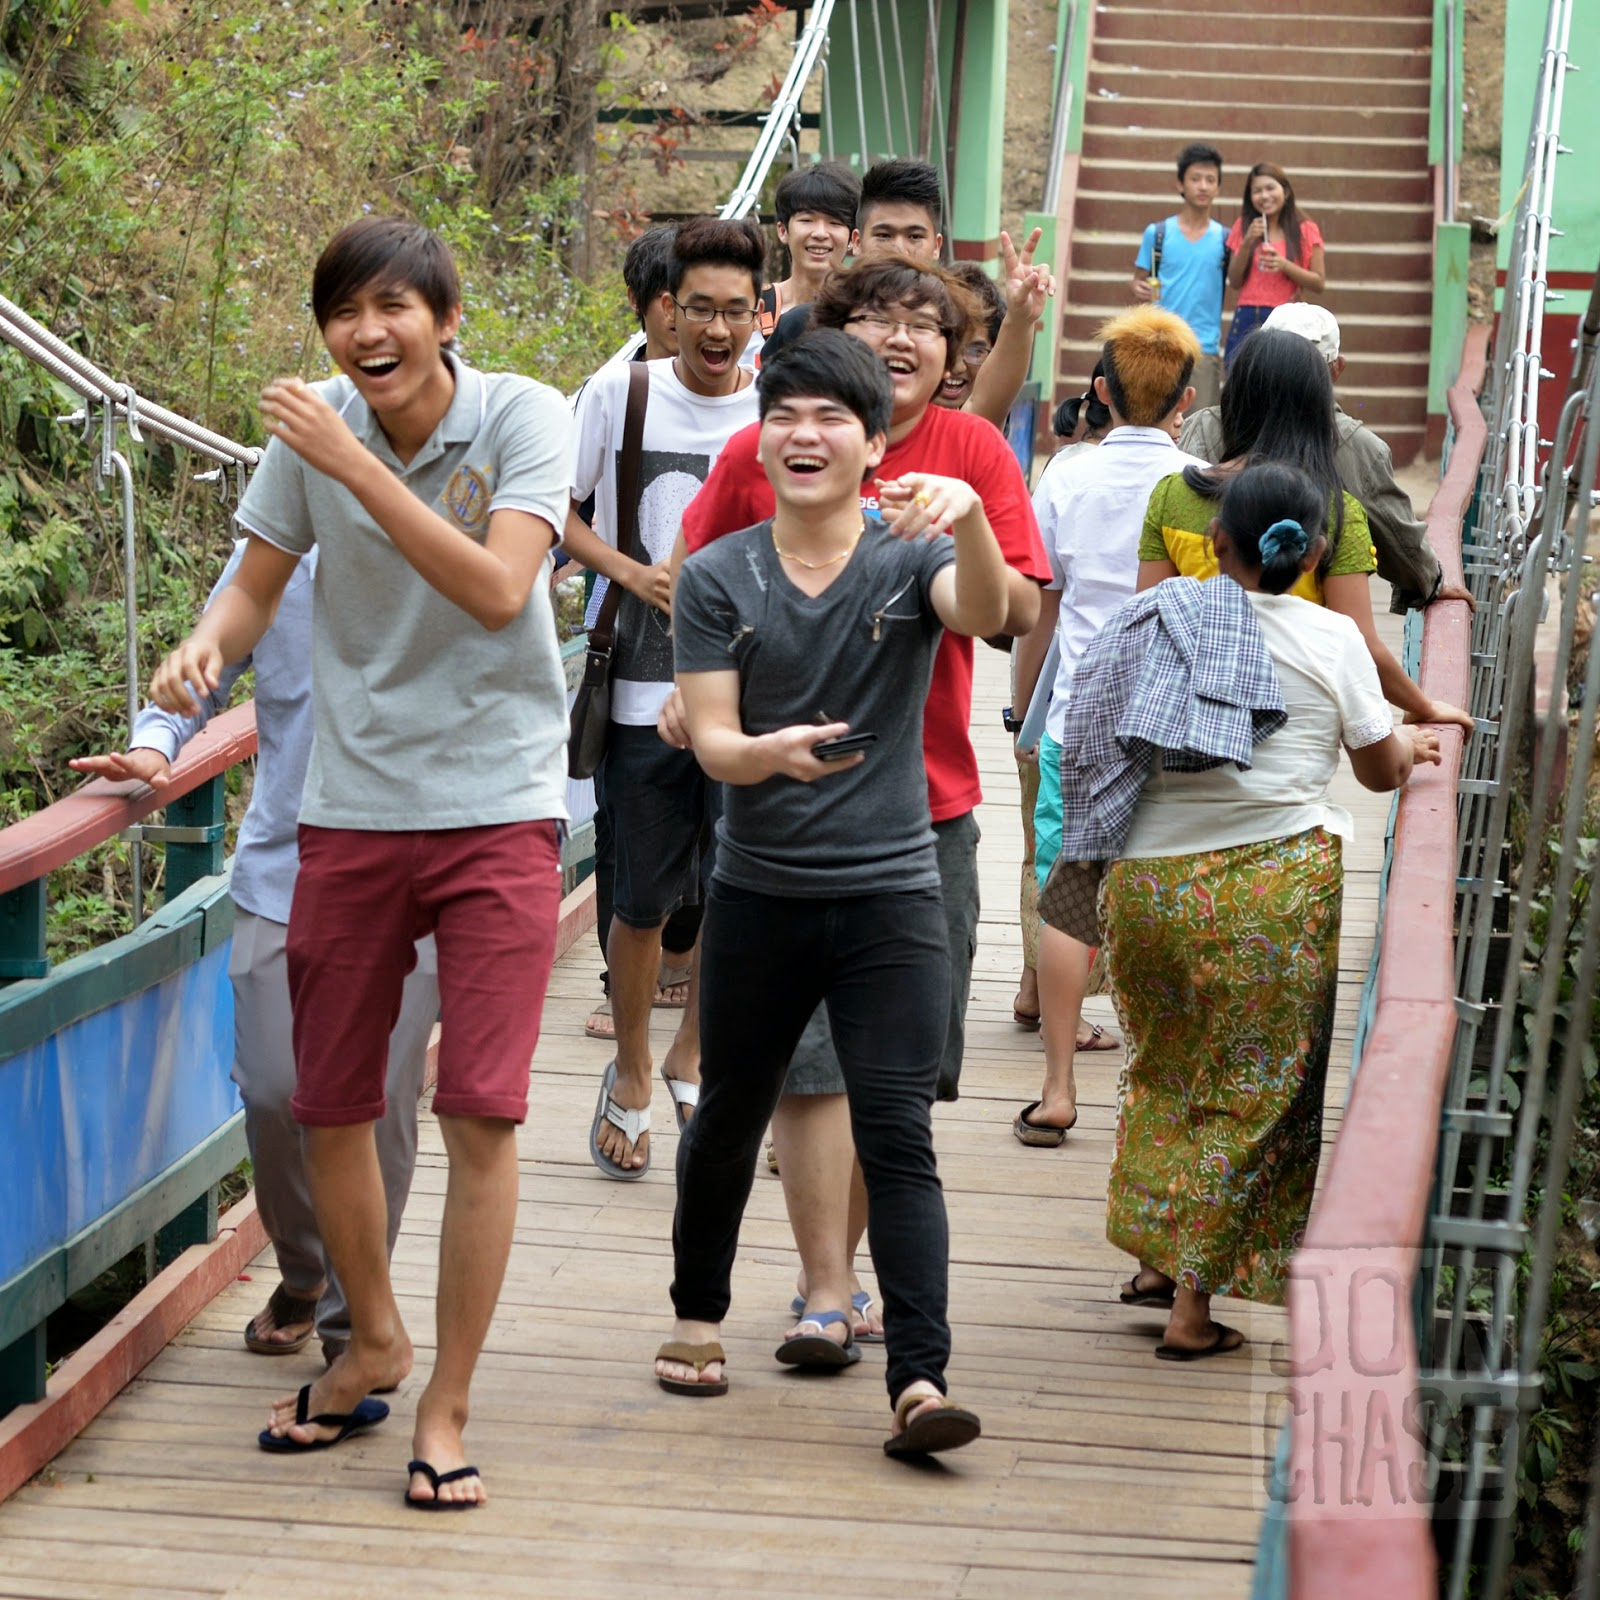 A group of people crossing the bridge near Peik Chin Myaung, Pyin Oo Lwin, Myanmar.